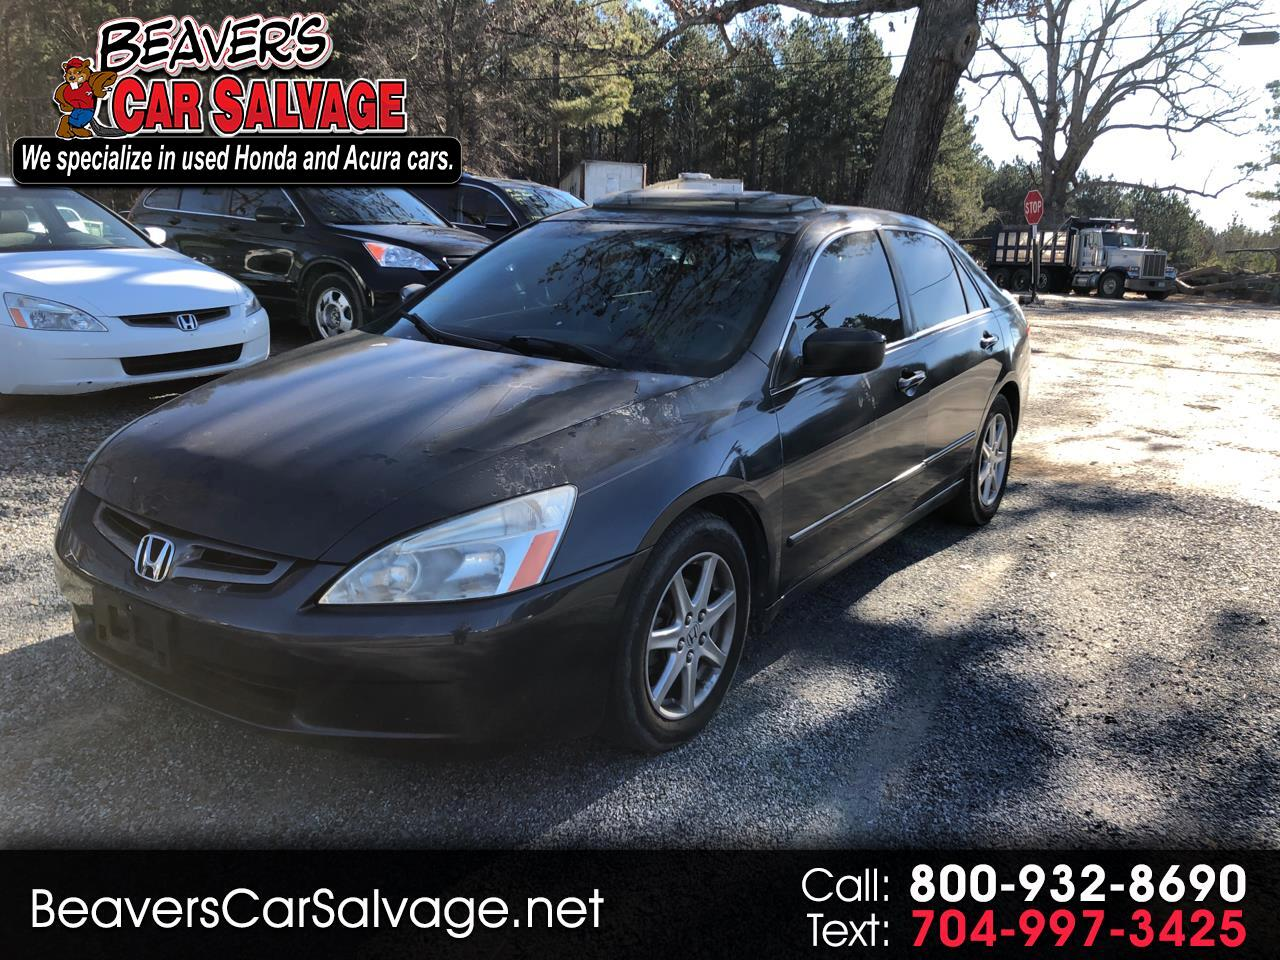 2003 Honda Accord Sdn EX Auto V6 w/Leather